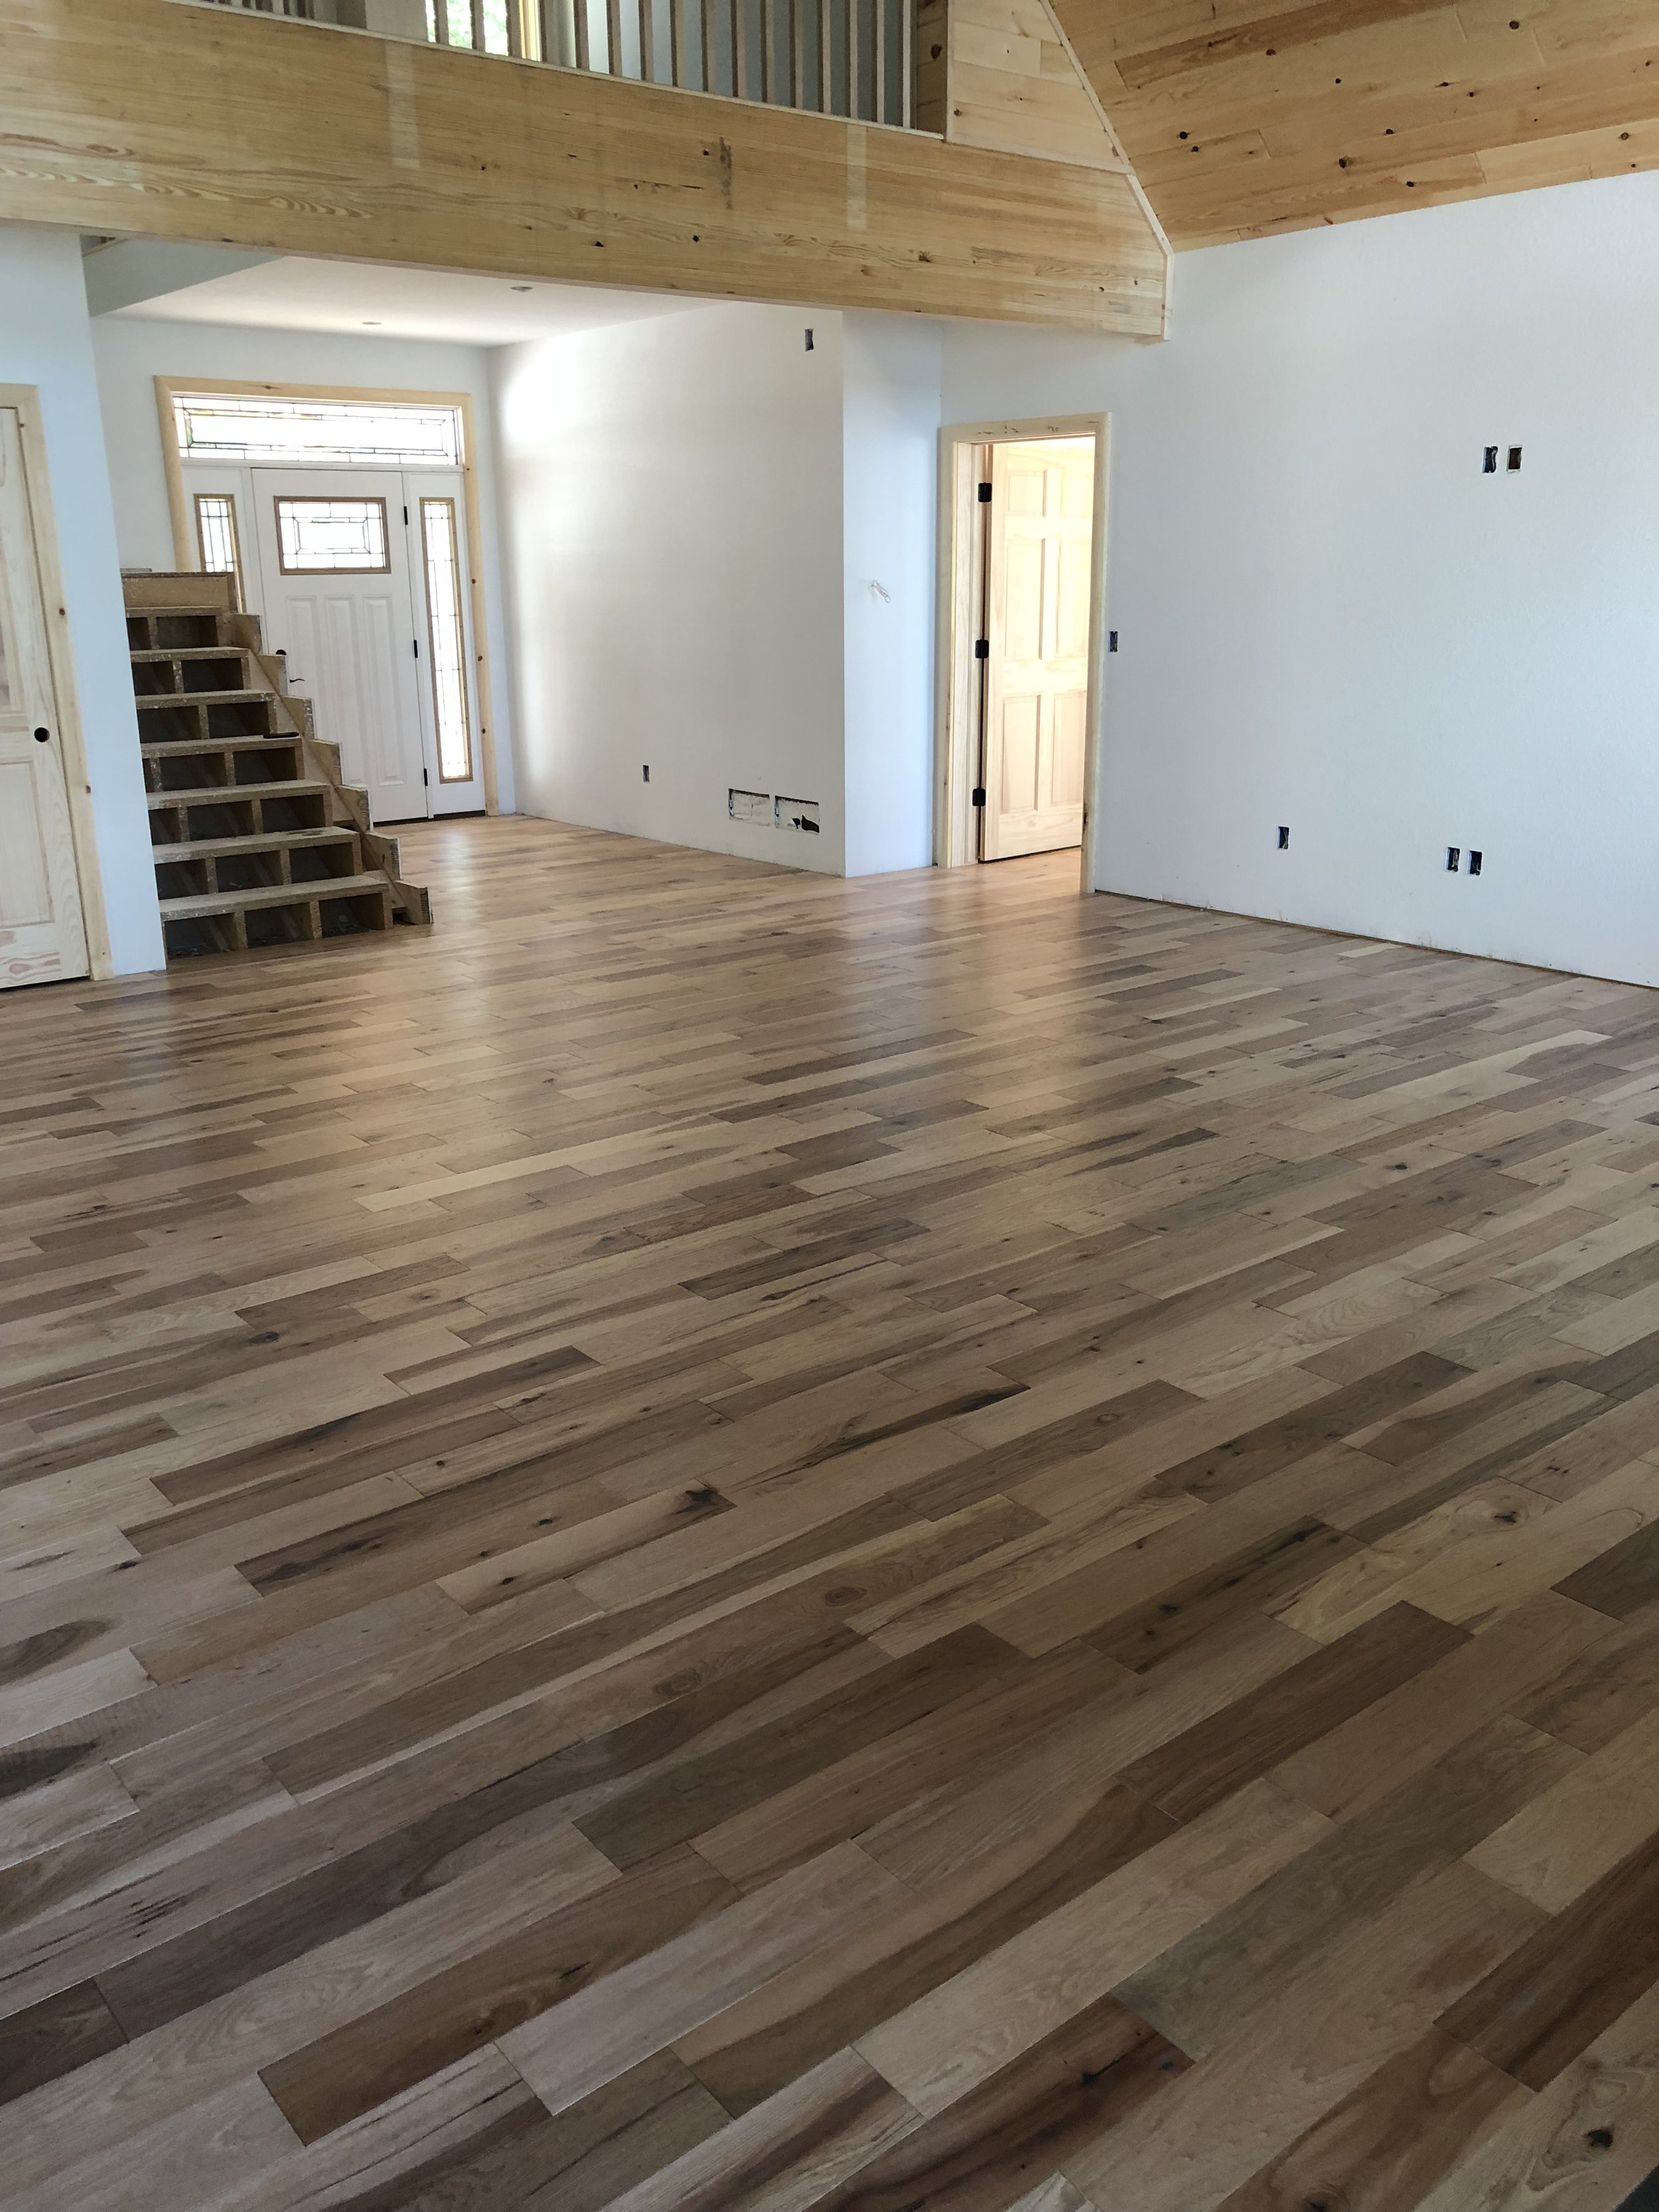 Gorgeous hardwood throughout the main living space